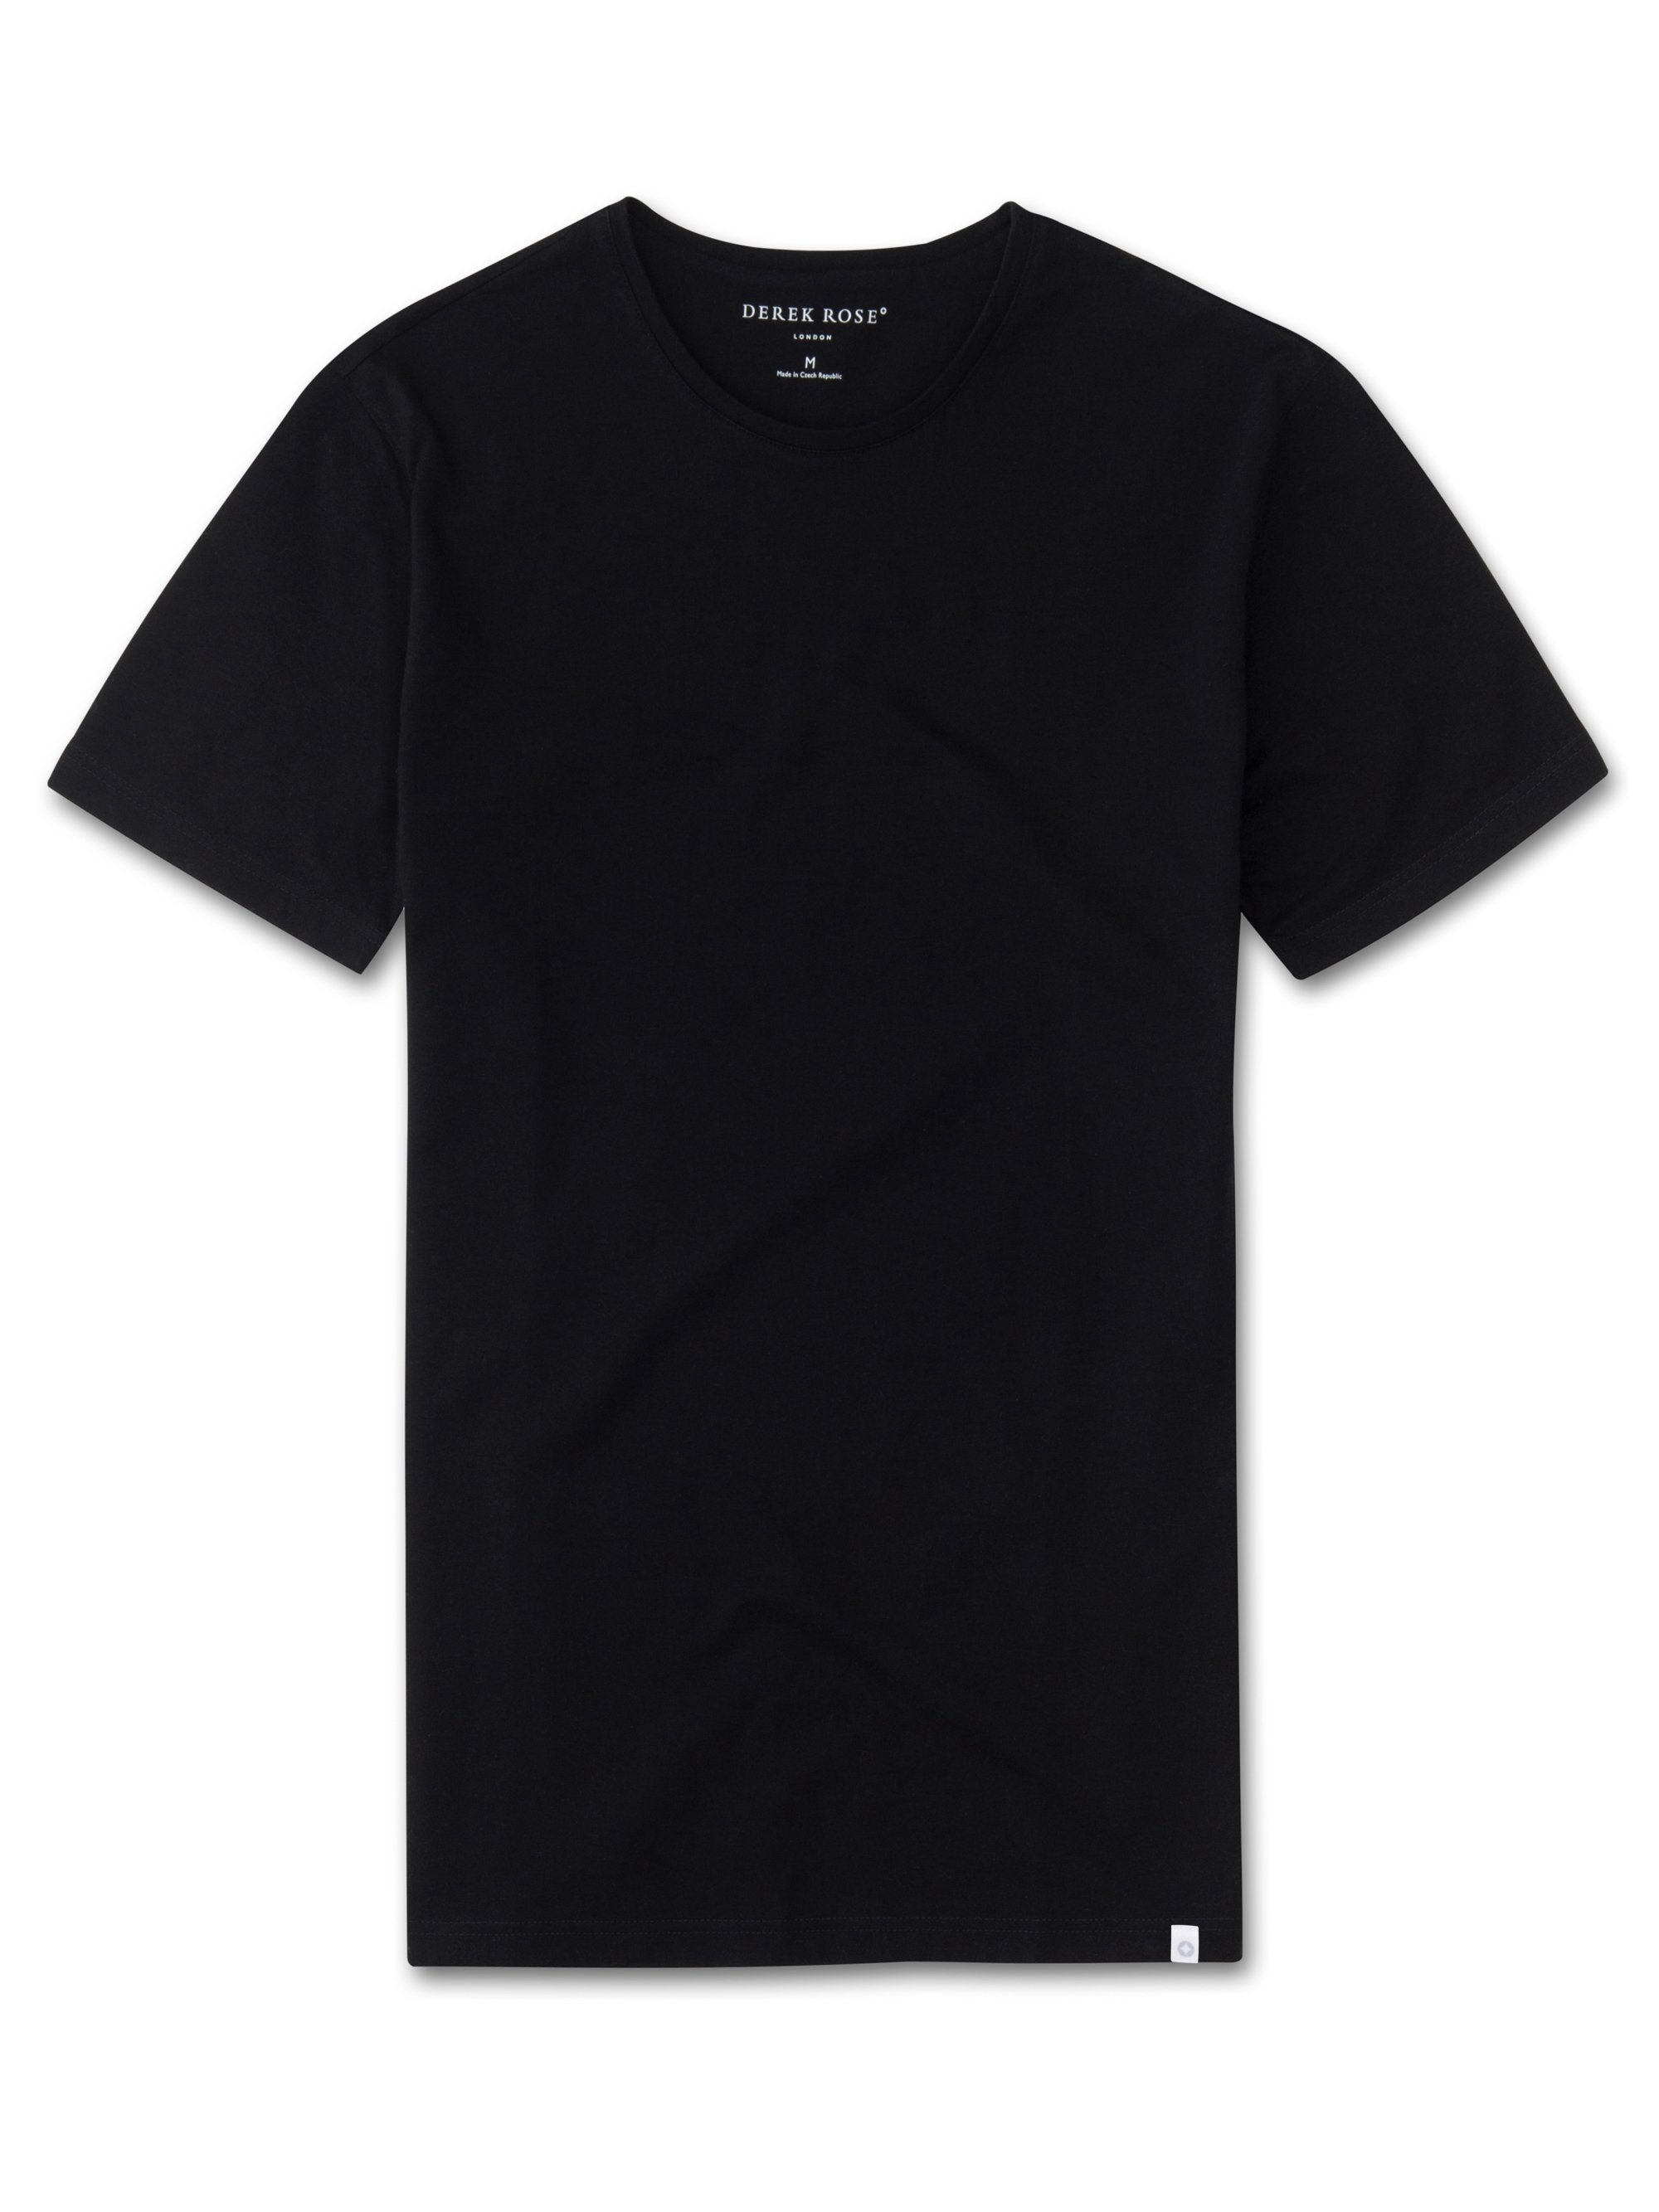 Men's Short Sleeve T-Shirt Turner Carbon-Brushed Cotton Black